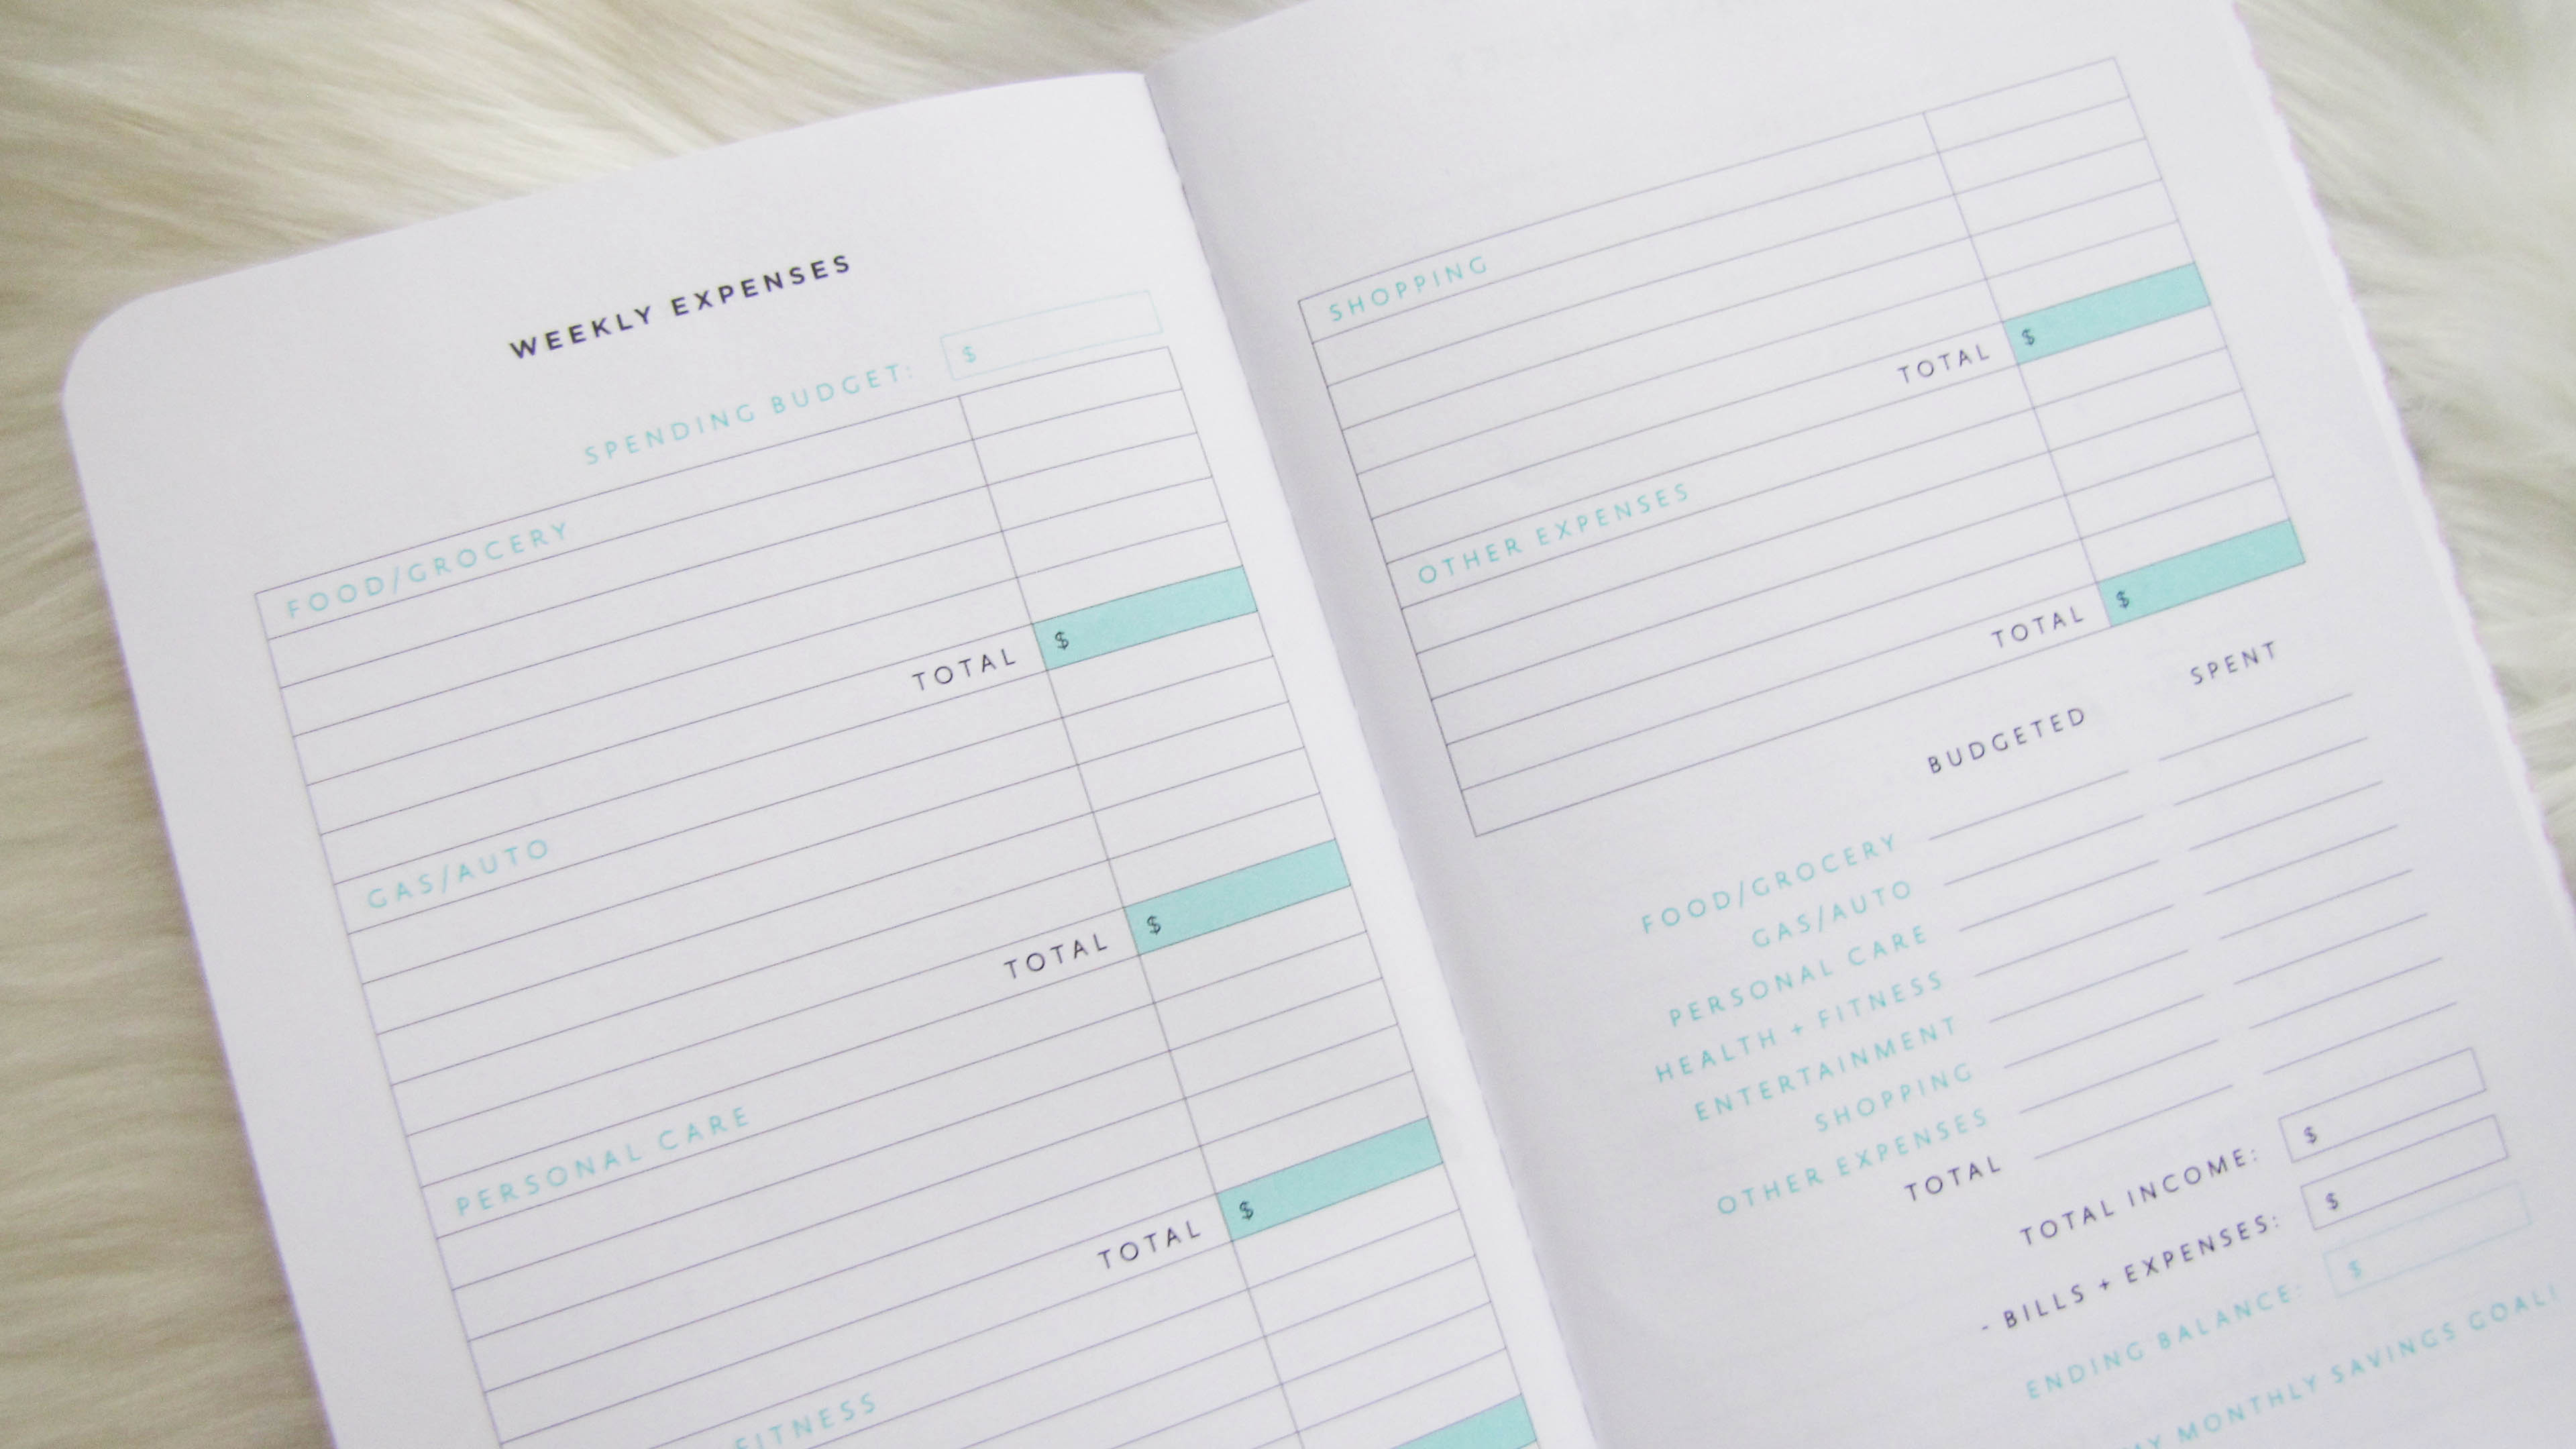 How to use a budget planner | Weekly Expenses on Budget Planner | Margaret Paige